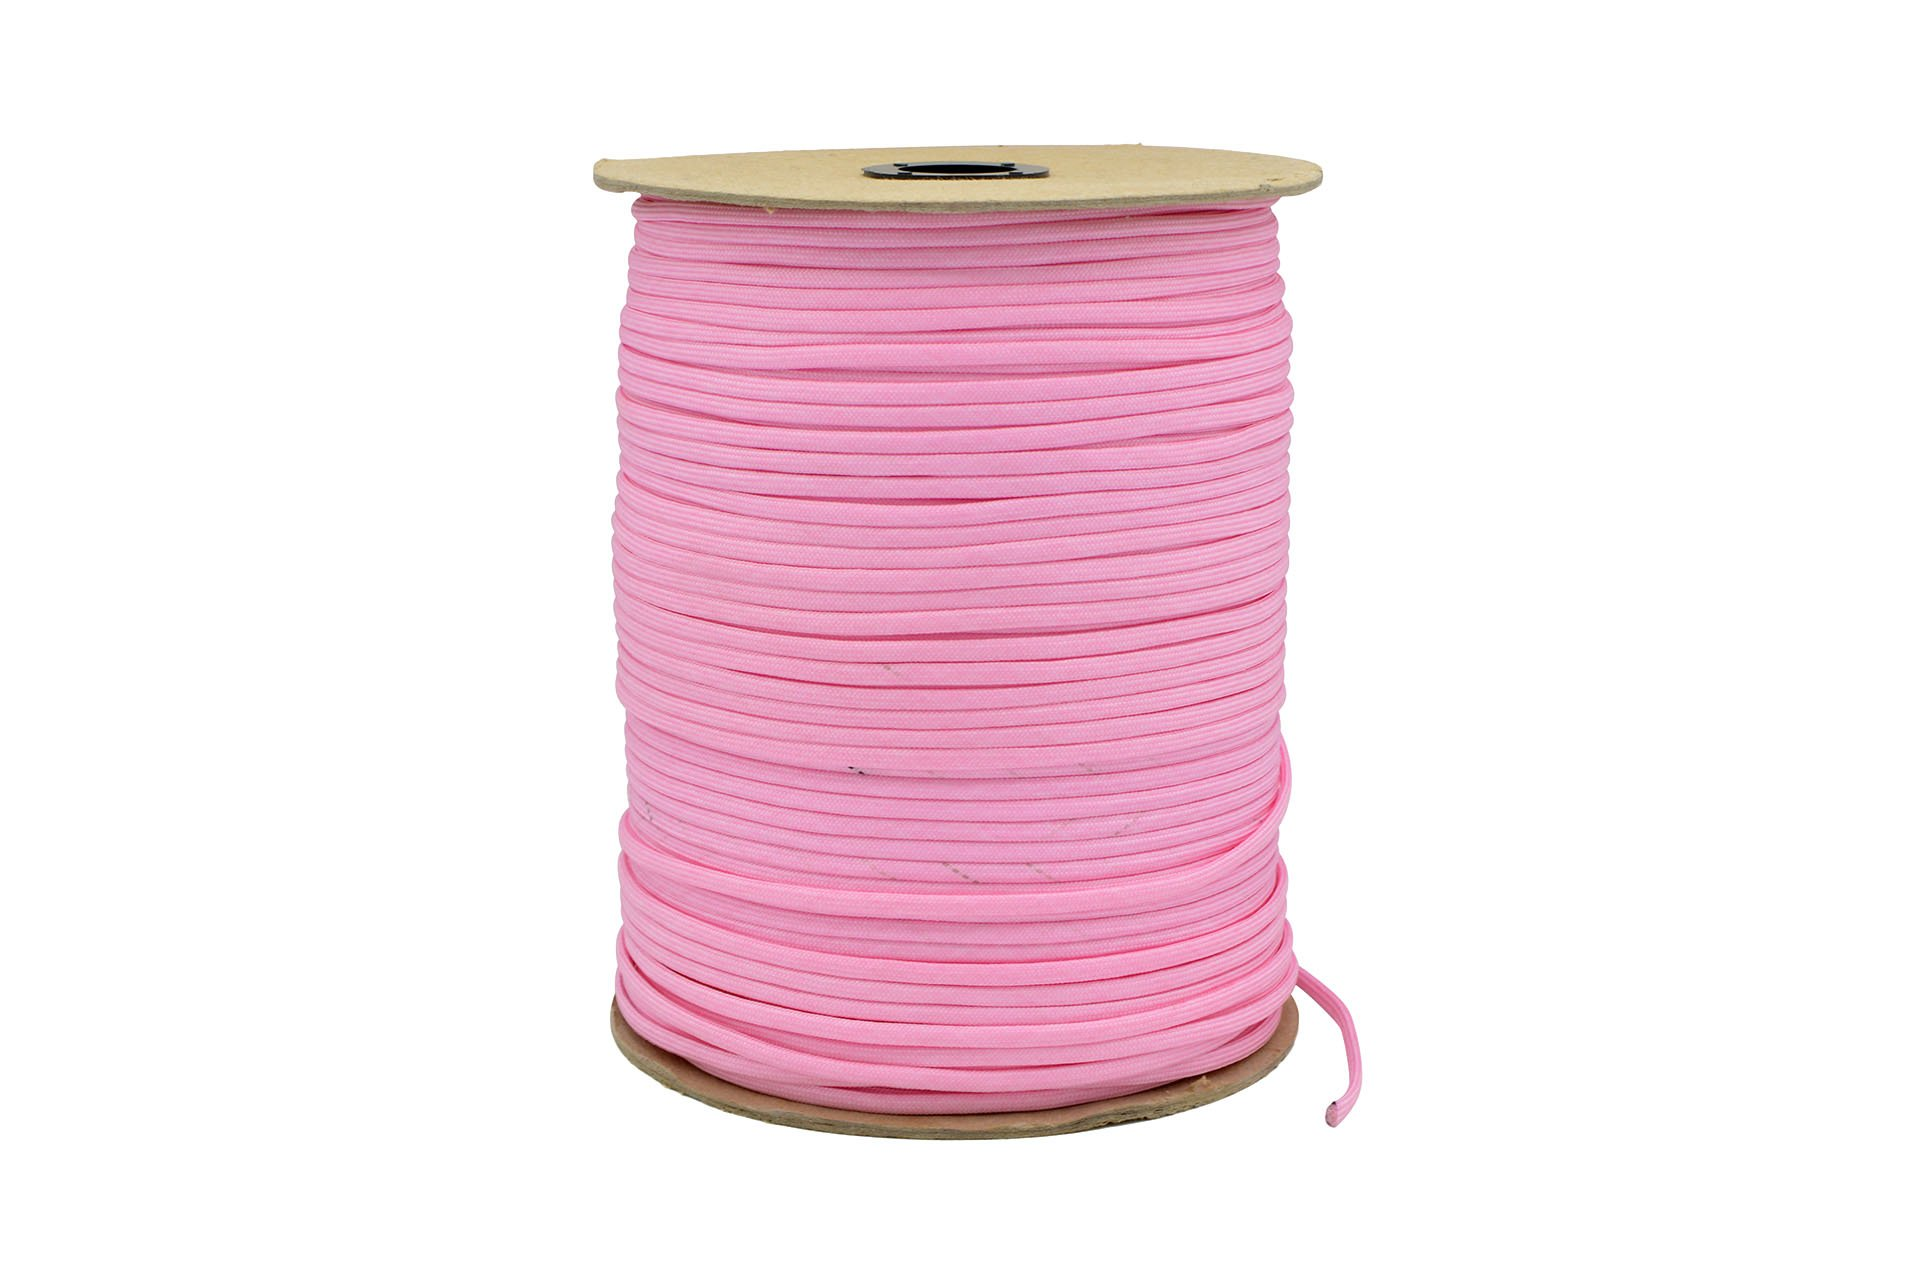 Paracord Rope 550 Type III Paracord - Parachute Cord - 550lb Tensile Strength - 100% Nylon - Made In The USA (Rose Pink, 1000 Feet) by Paracord Rope (Image #3)